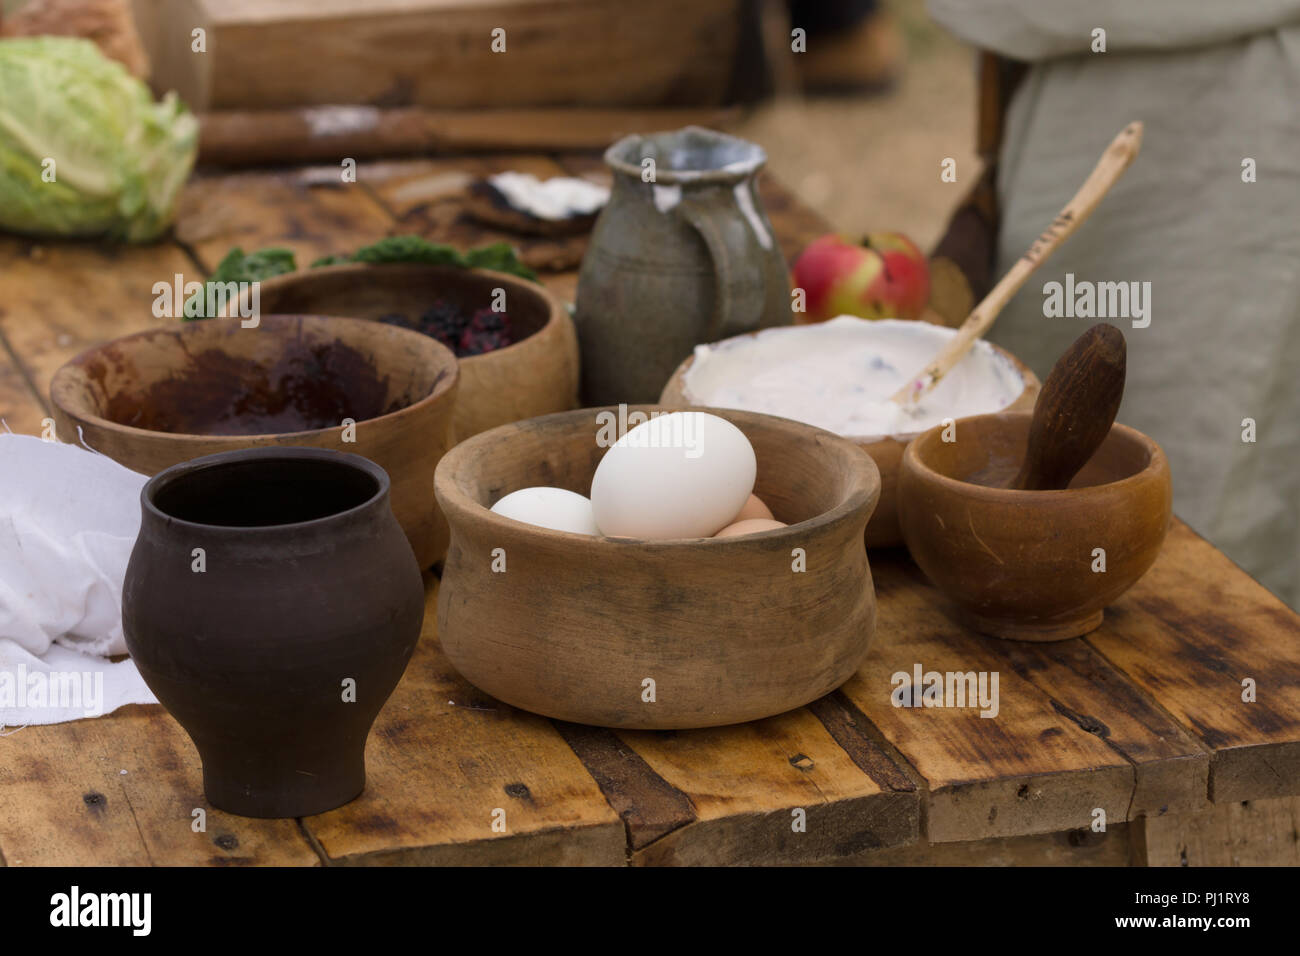 Küche Modern Creme Life In Middle Ages Stock Photos Life In Middle Ages Stock